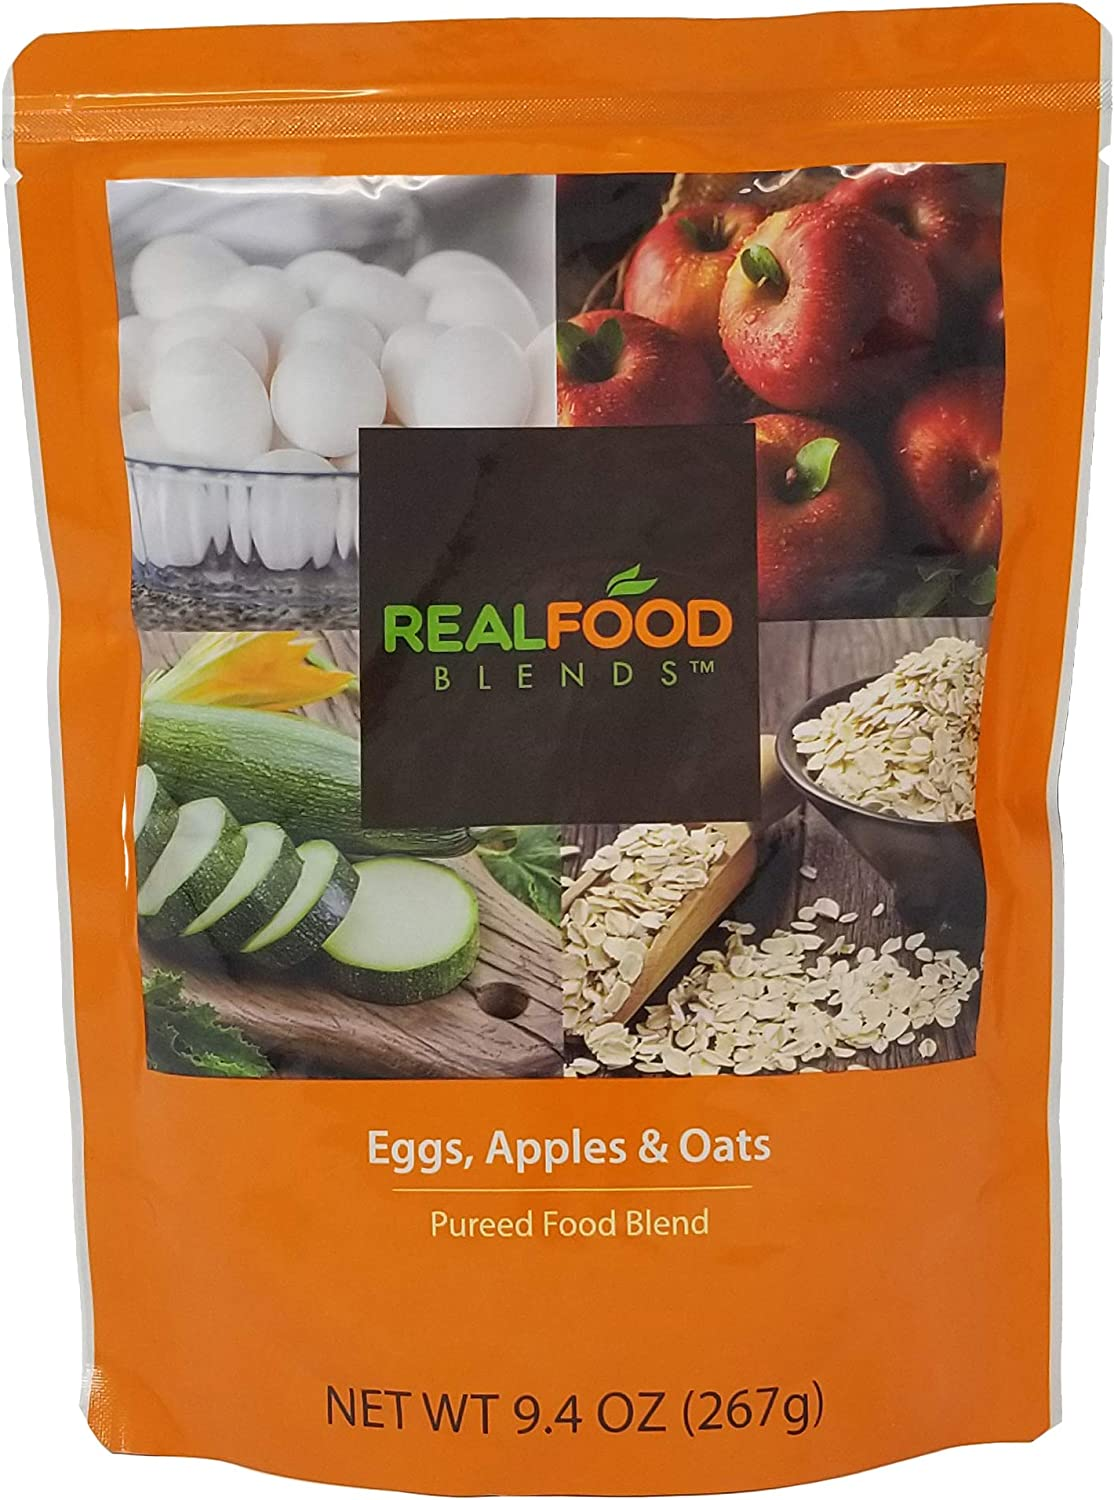 Real Food Blends Eggs, Apples & Oats Pureed Blended Meal for Feeding Tubes, 9.4 oz Pouch (Pack of 12 Pouches)